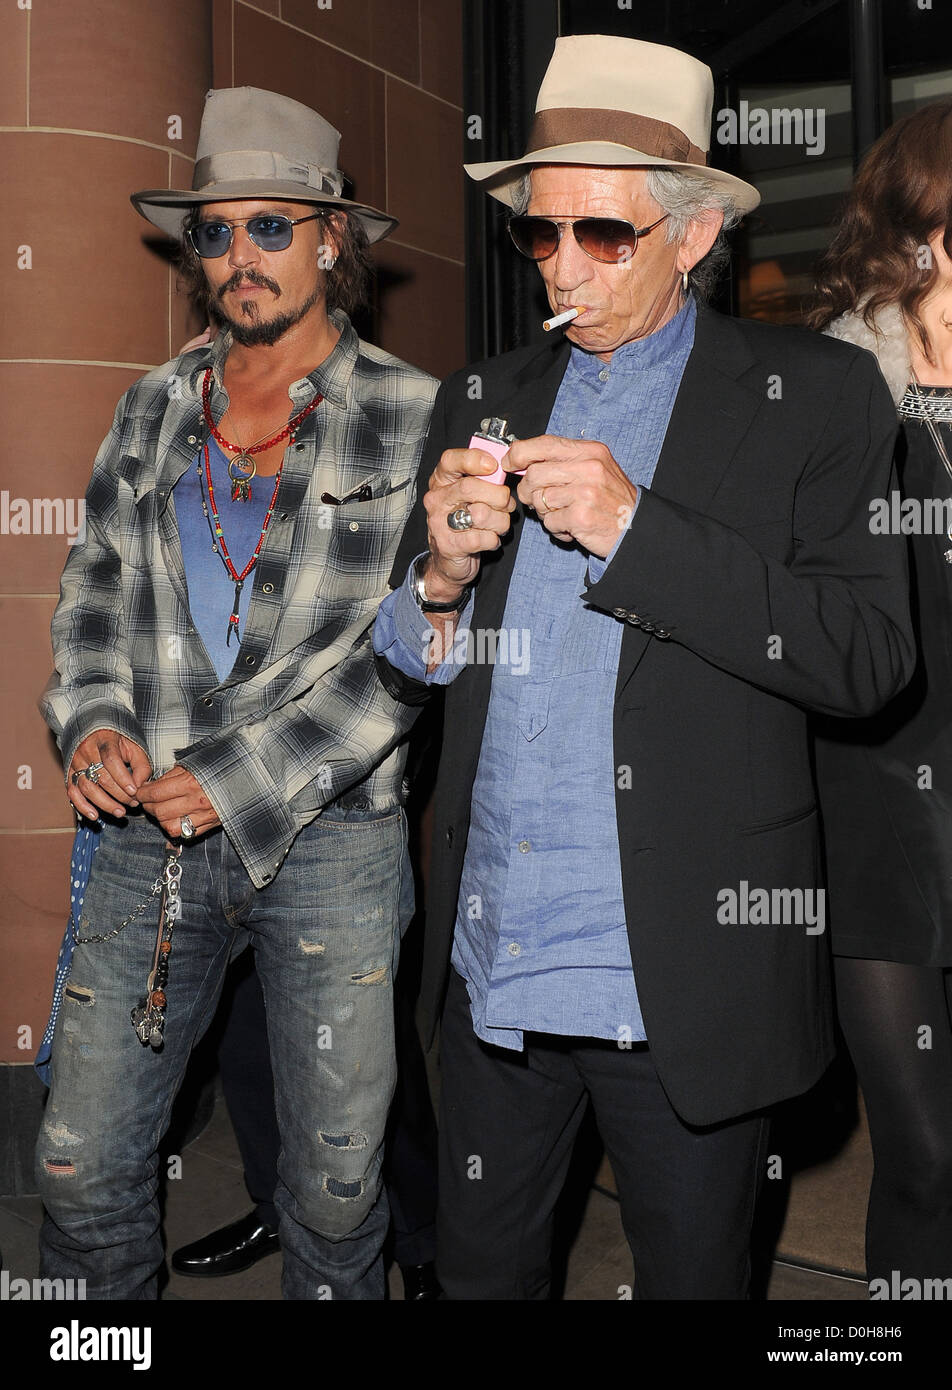 Johnny Depp and Keith Richards both wearing fedora hats and sunglasses 0ae79c0ae57